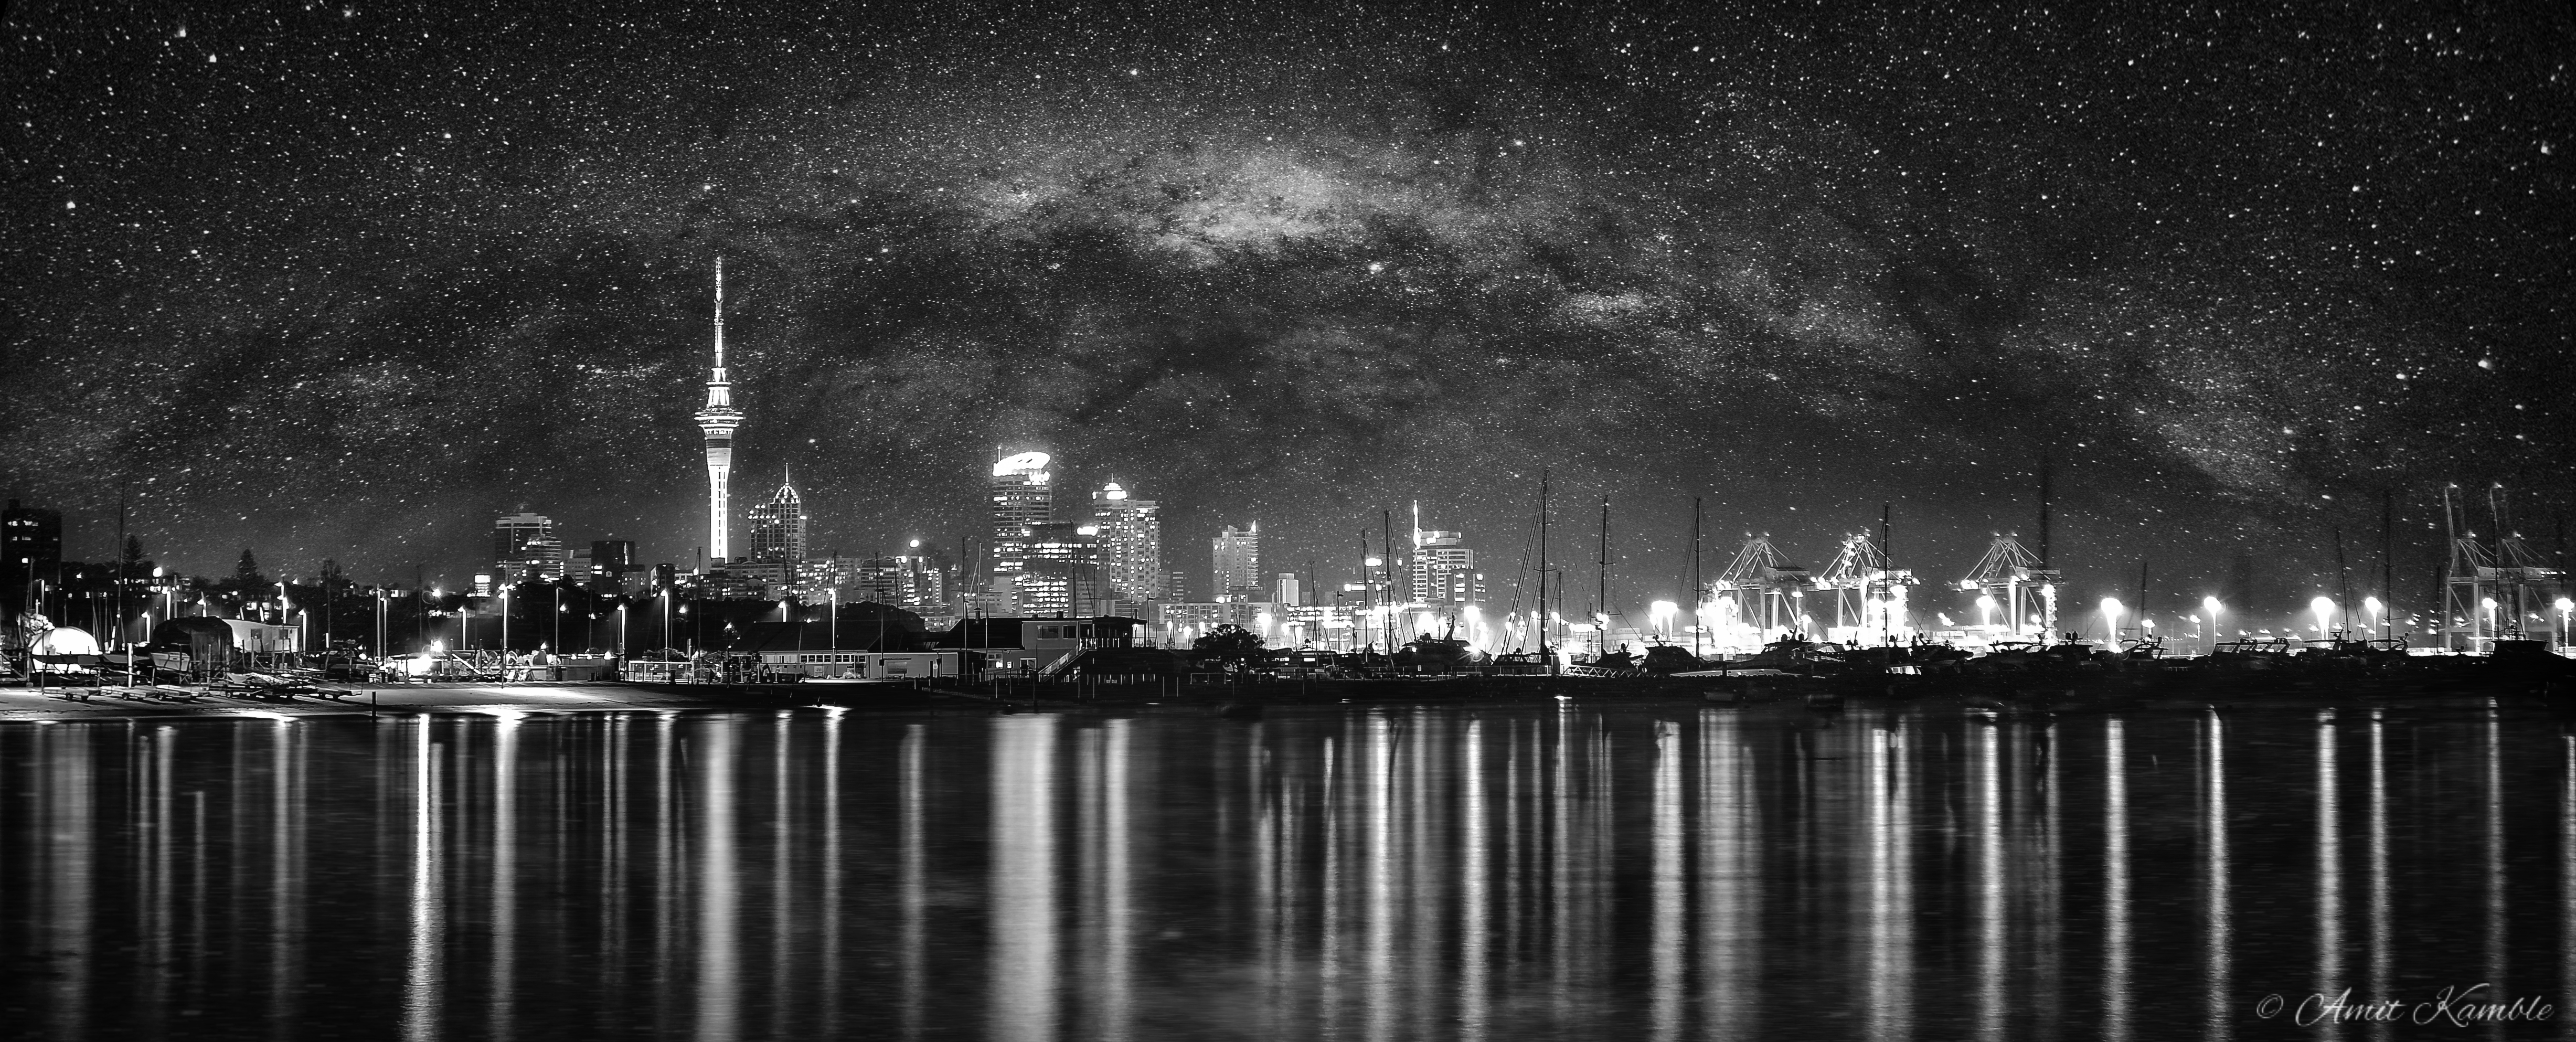 Milkyway and Auckland